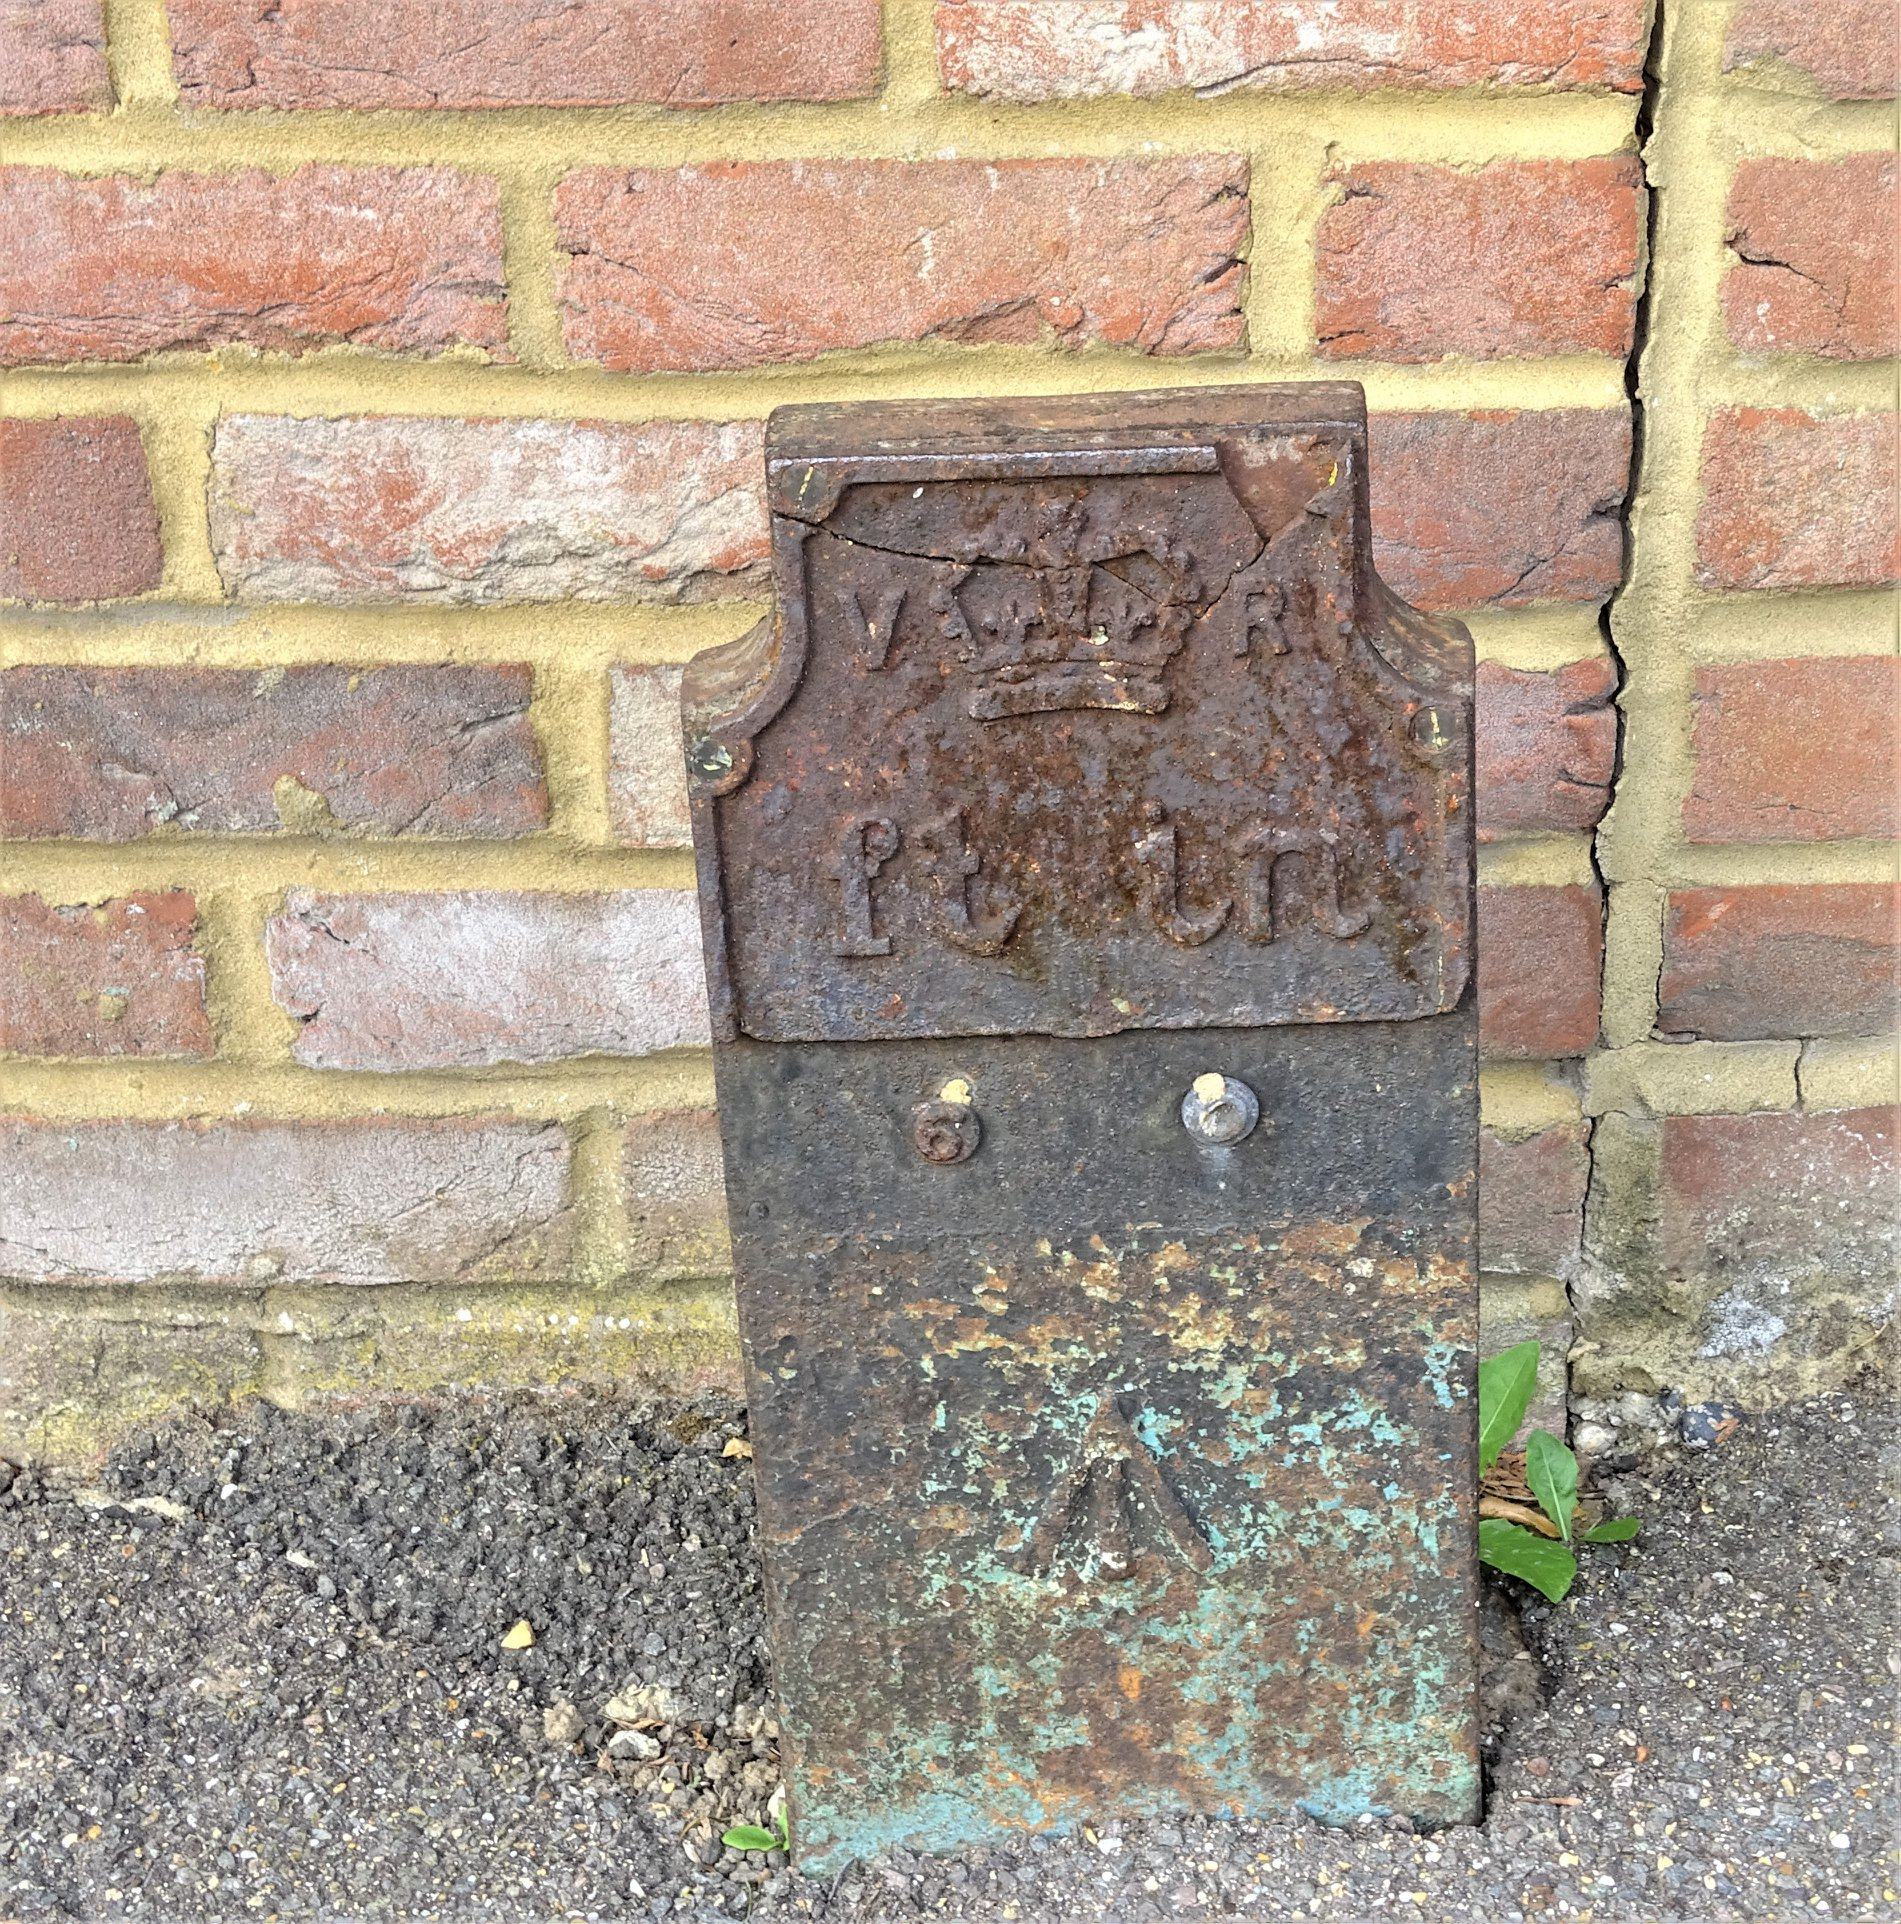 Telegraph cable marker post at 238 Hempstead Road, Watford by Stephen Danzig